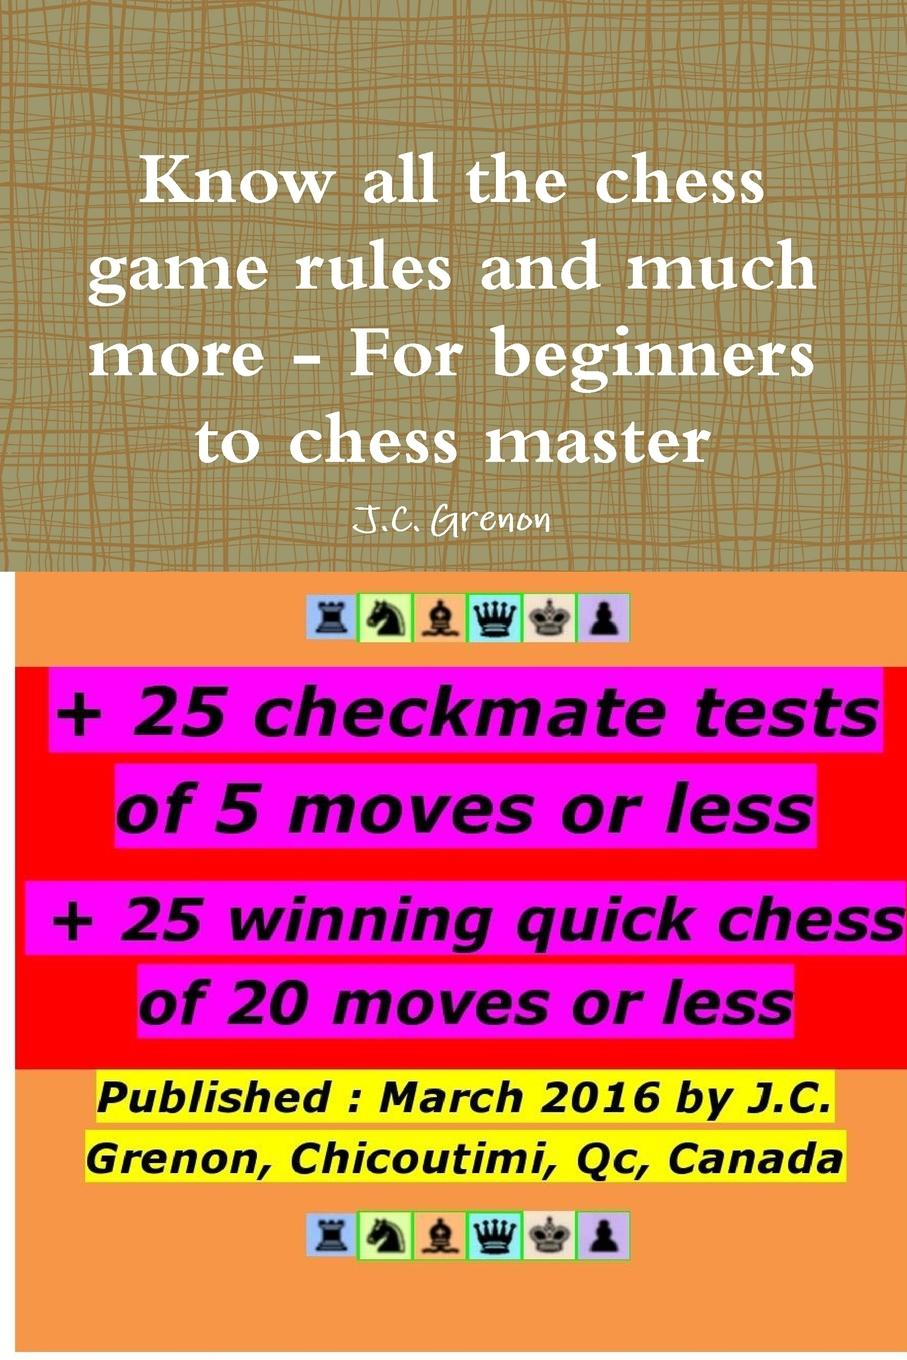 J.C. Grenon Know all the chess rules and much more dangerous game level 3